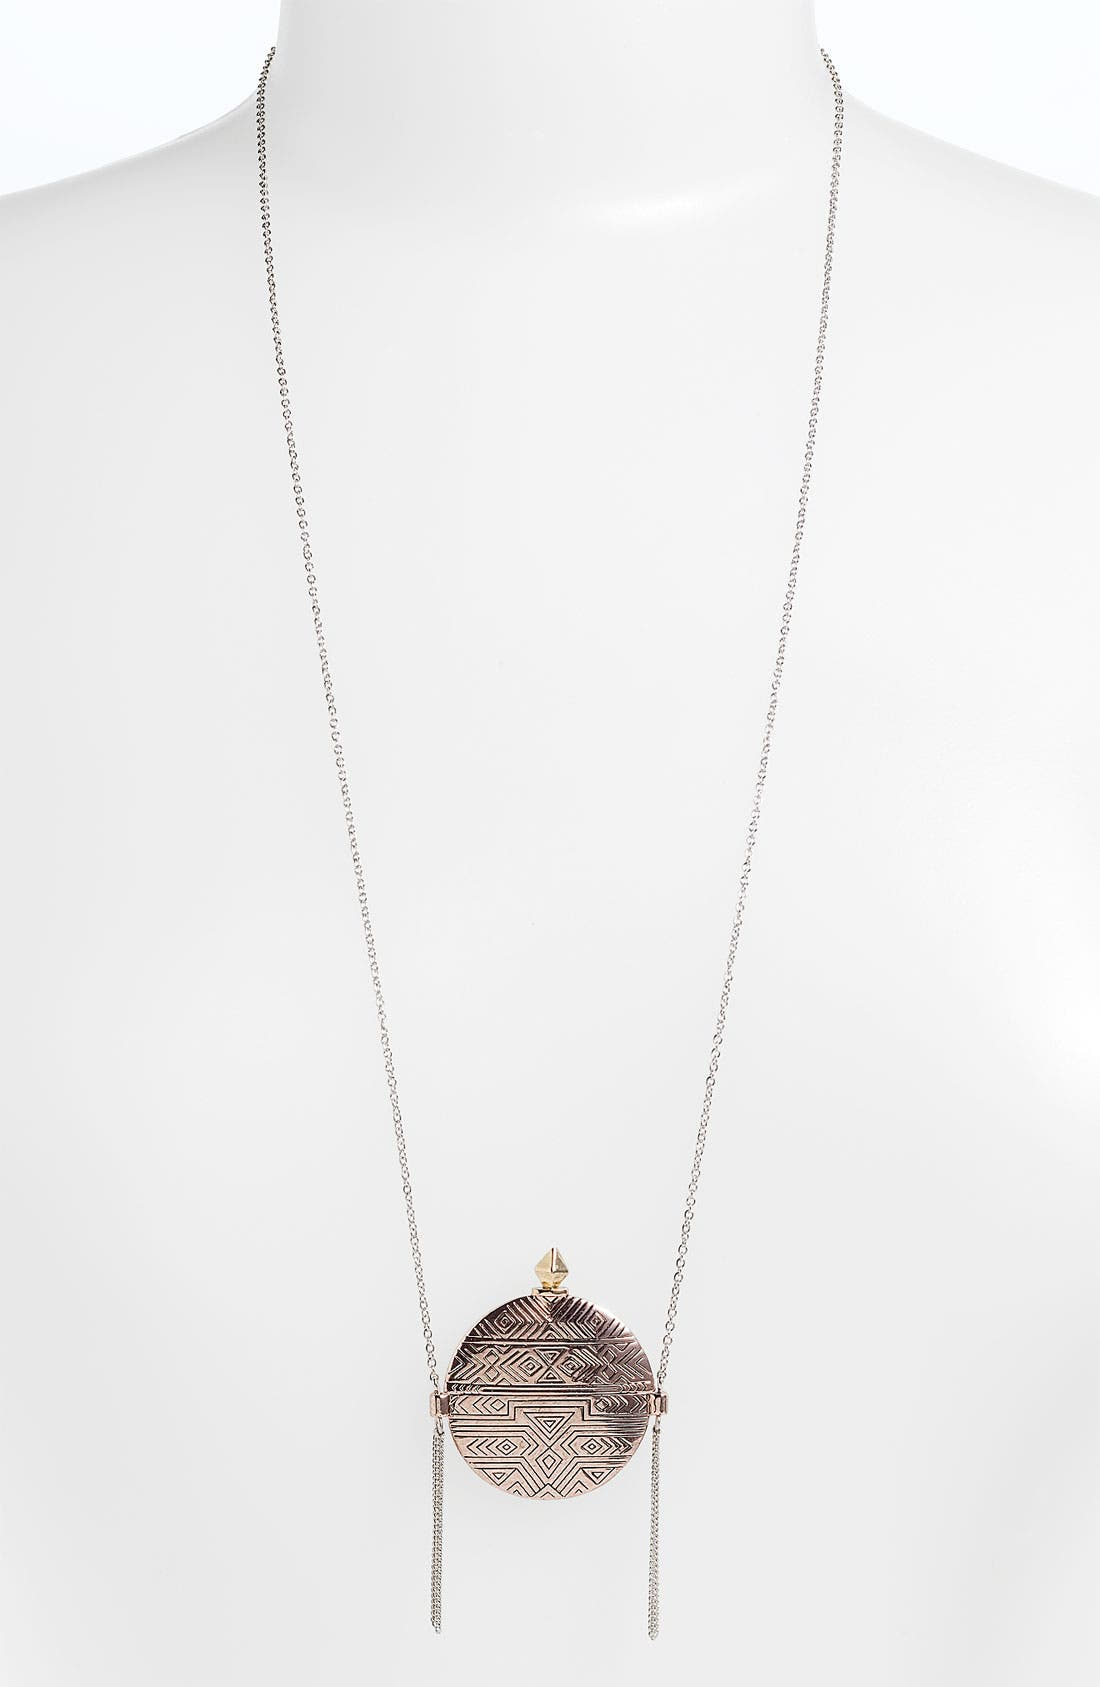 Main Image - House of Harlow 1960 Engraved Medallion Necklace